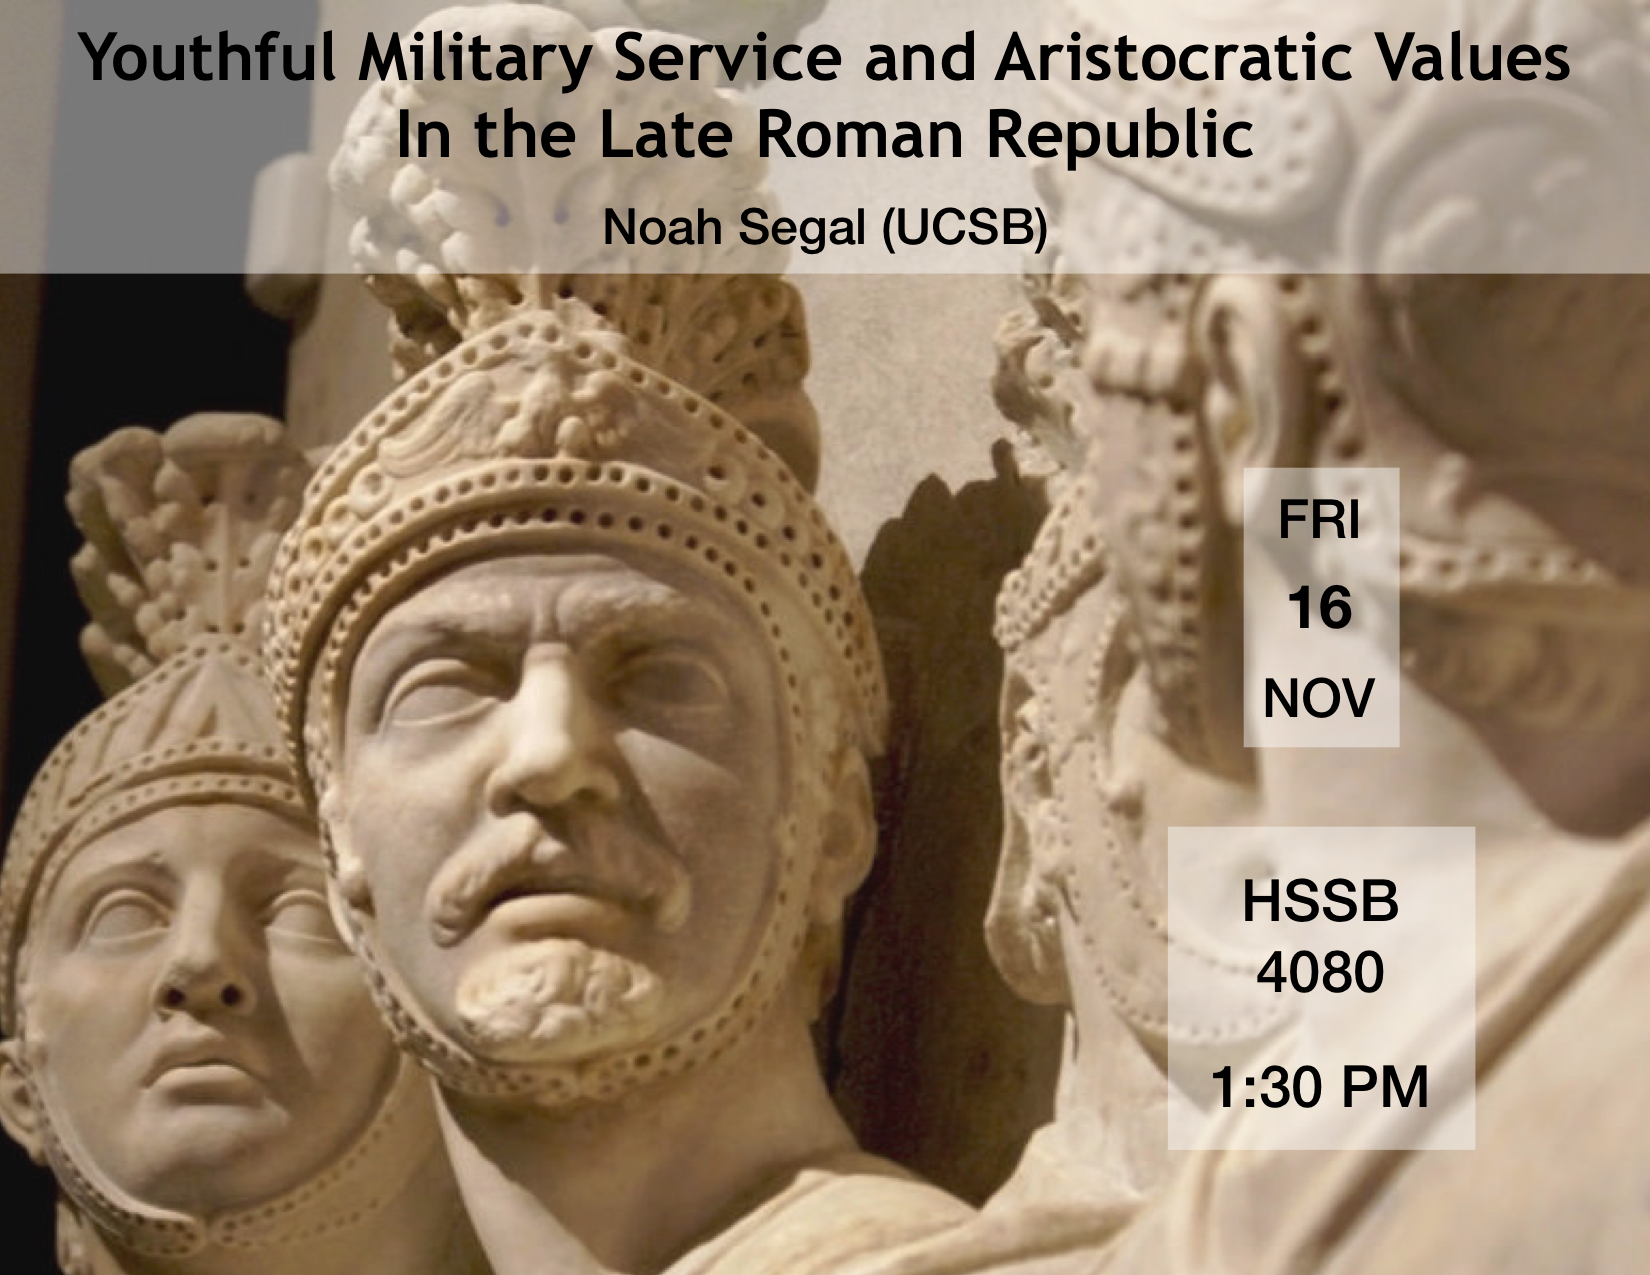 """Noah Segal (UCSB), """"Youthful Military Service and Aristocratic Values in the Late Roman Republic"""" @ HSSB 4080"""